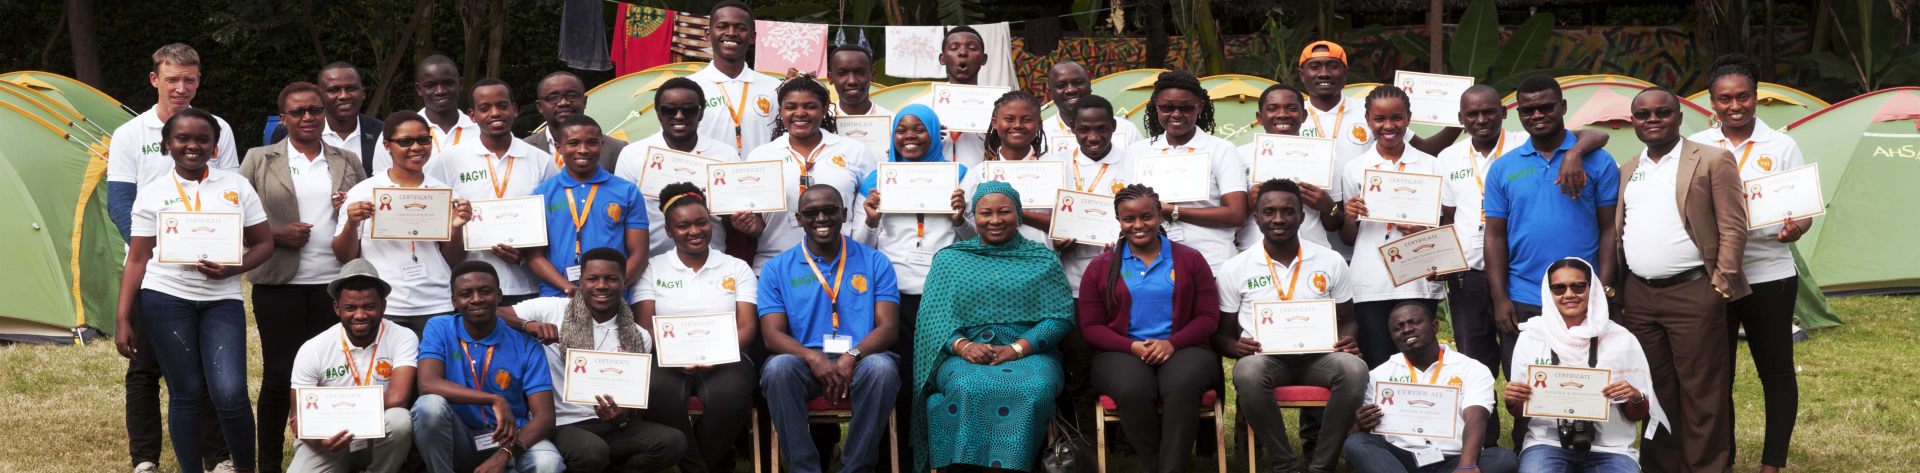 group of people holding their certificate